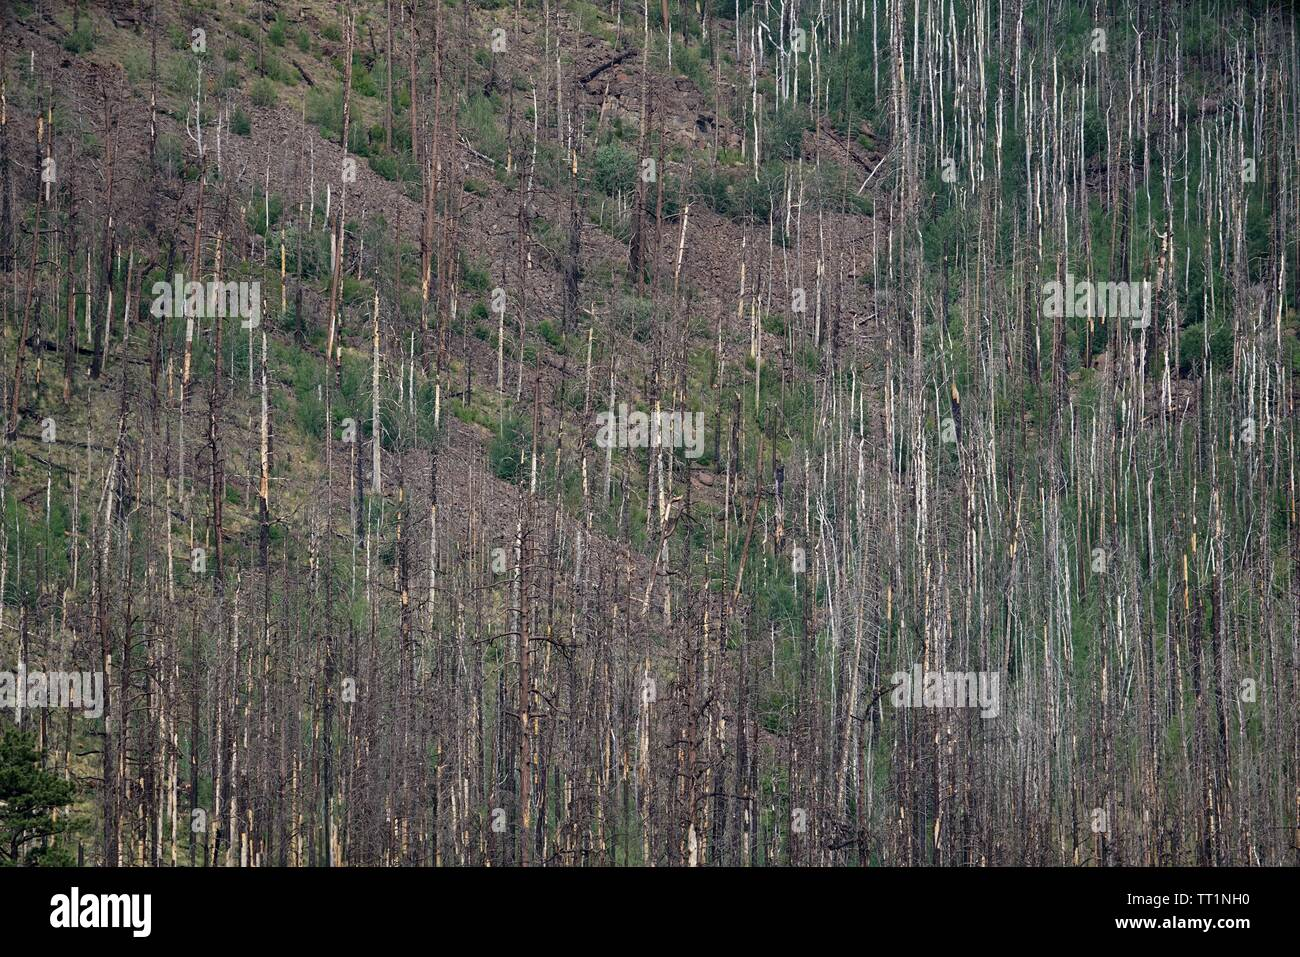 Dead trees remain after a wildfire scorched the area. - Stock Image